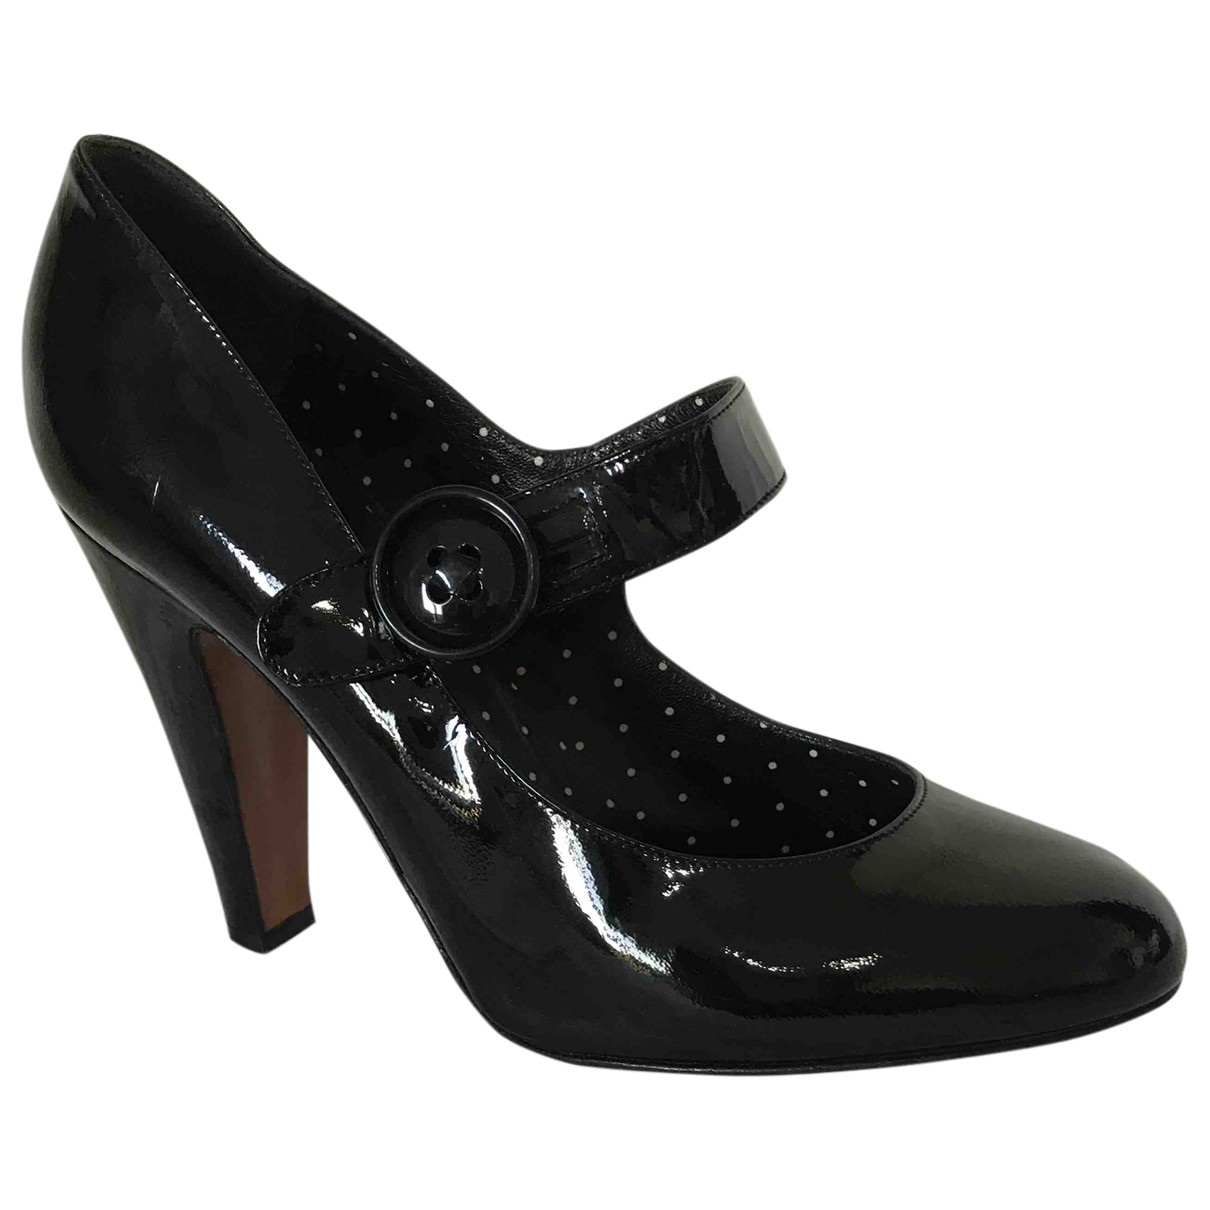 Tacones de Charol Moschino Cheap And Chic